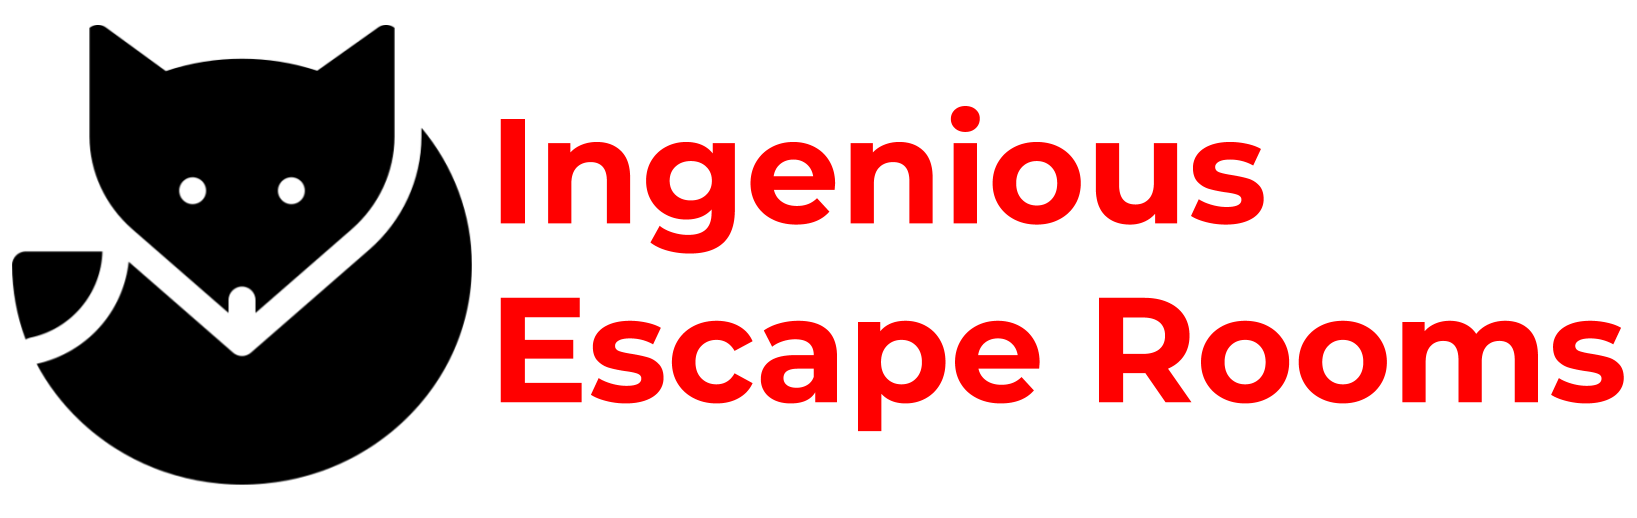 Ingenious Escape Rooms |   IMG_2555